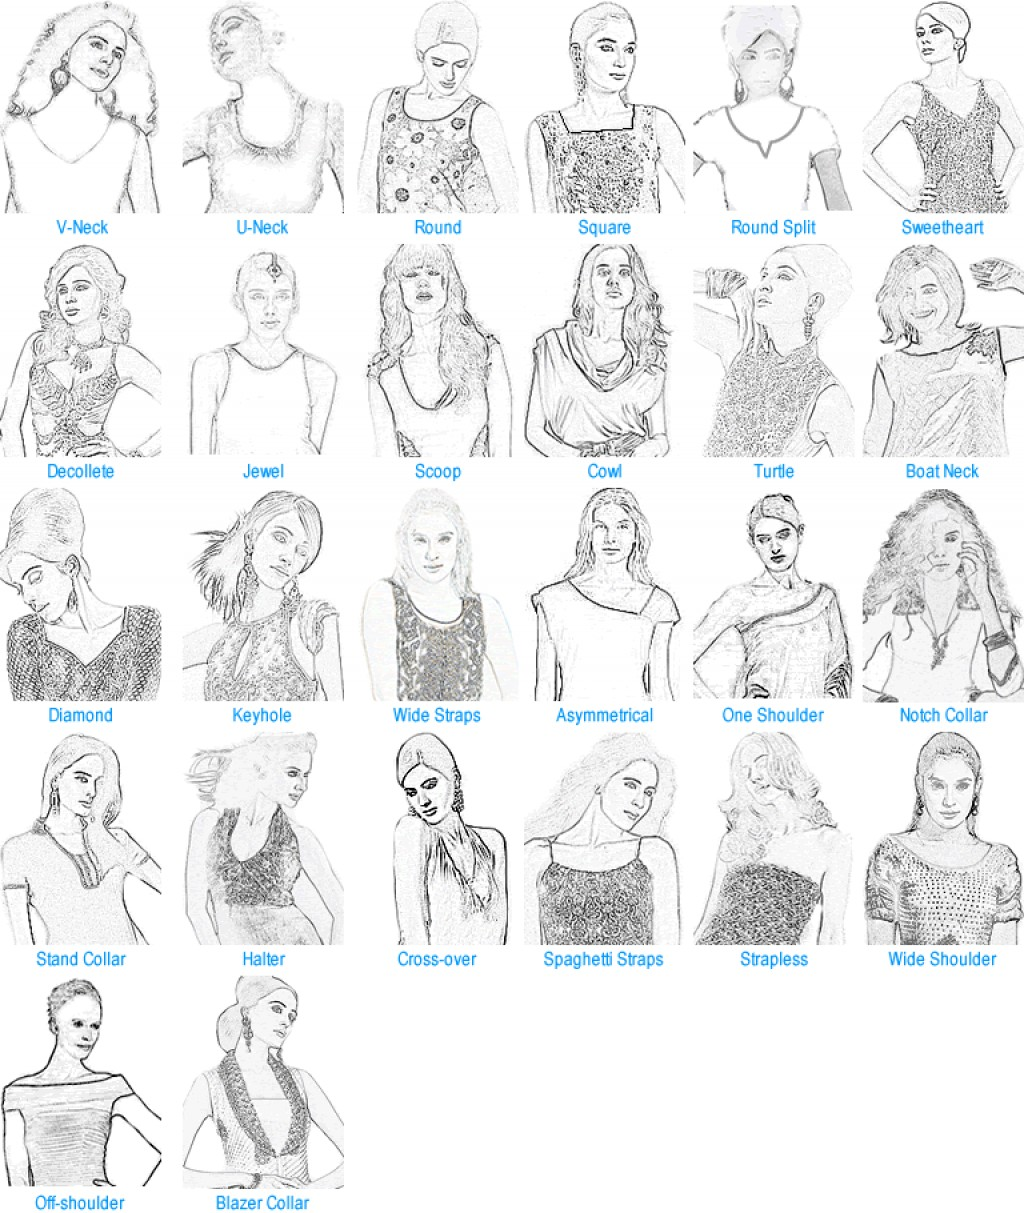 Most Flattering Appropriate Neckline Types For Oval Round And Square Faces (for Women) | Hubpages